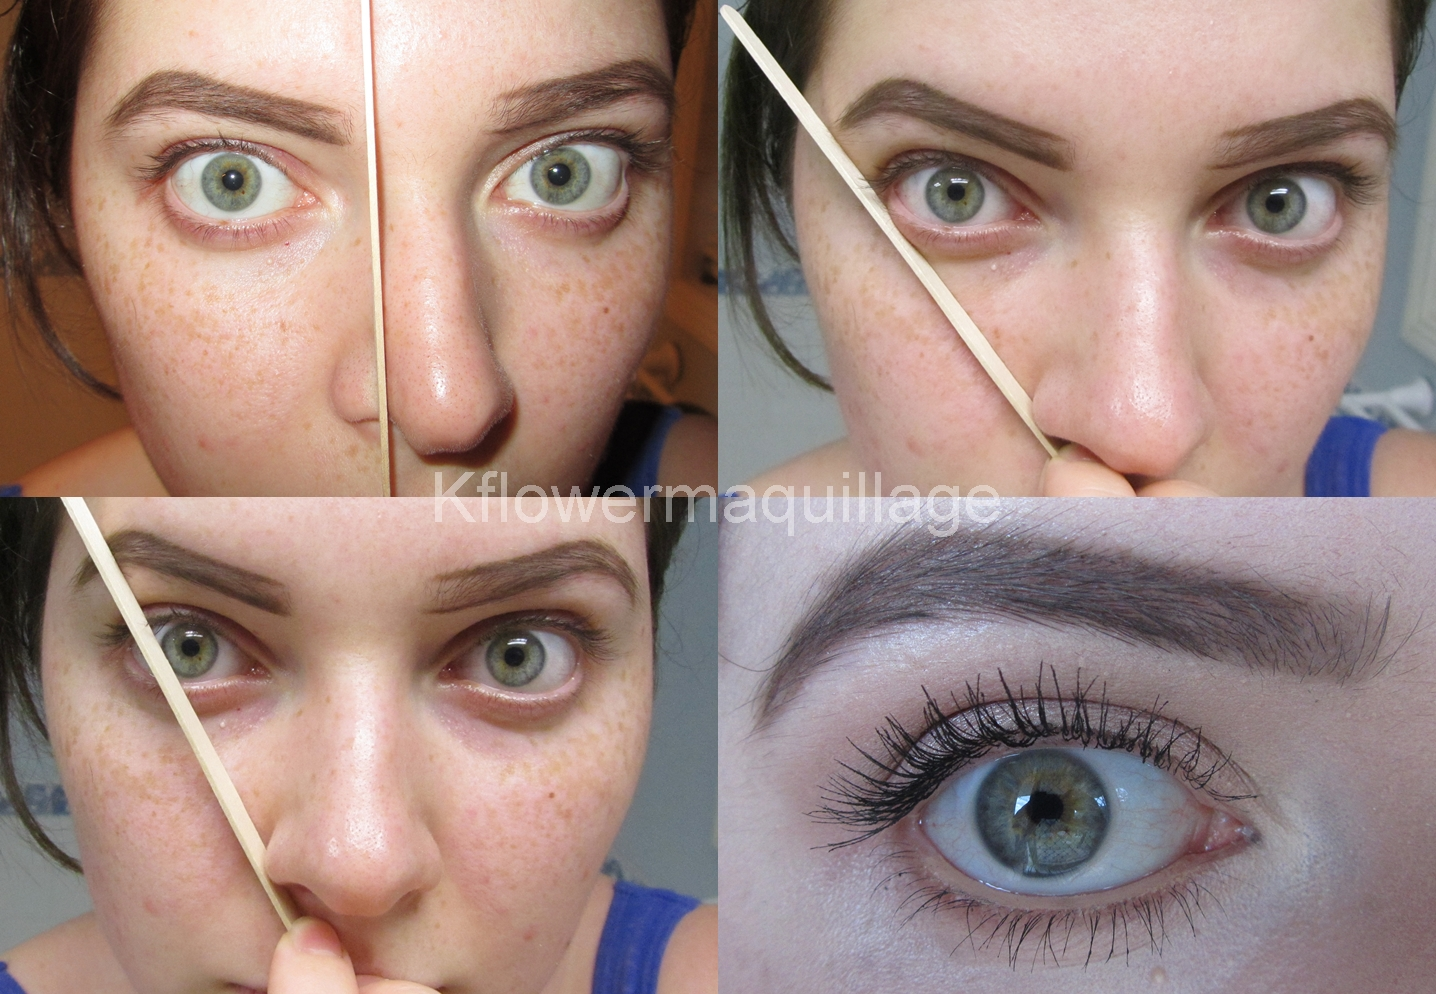 how to put makeup on my eyebrows